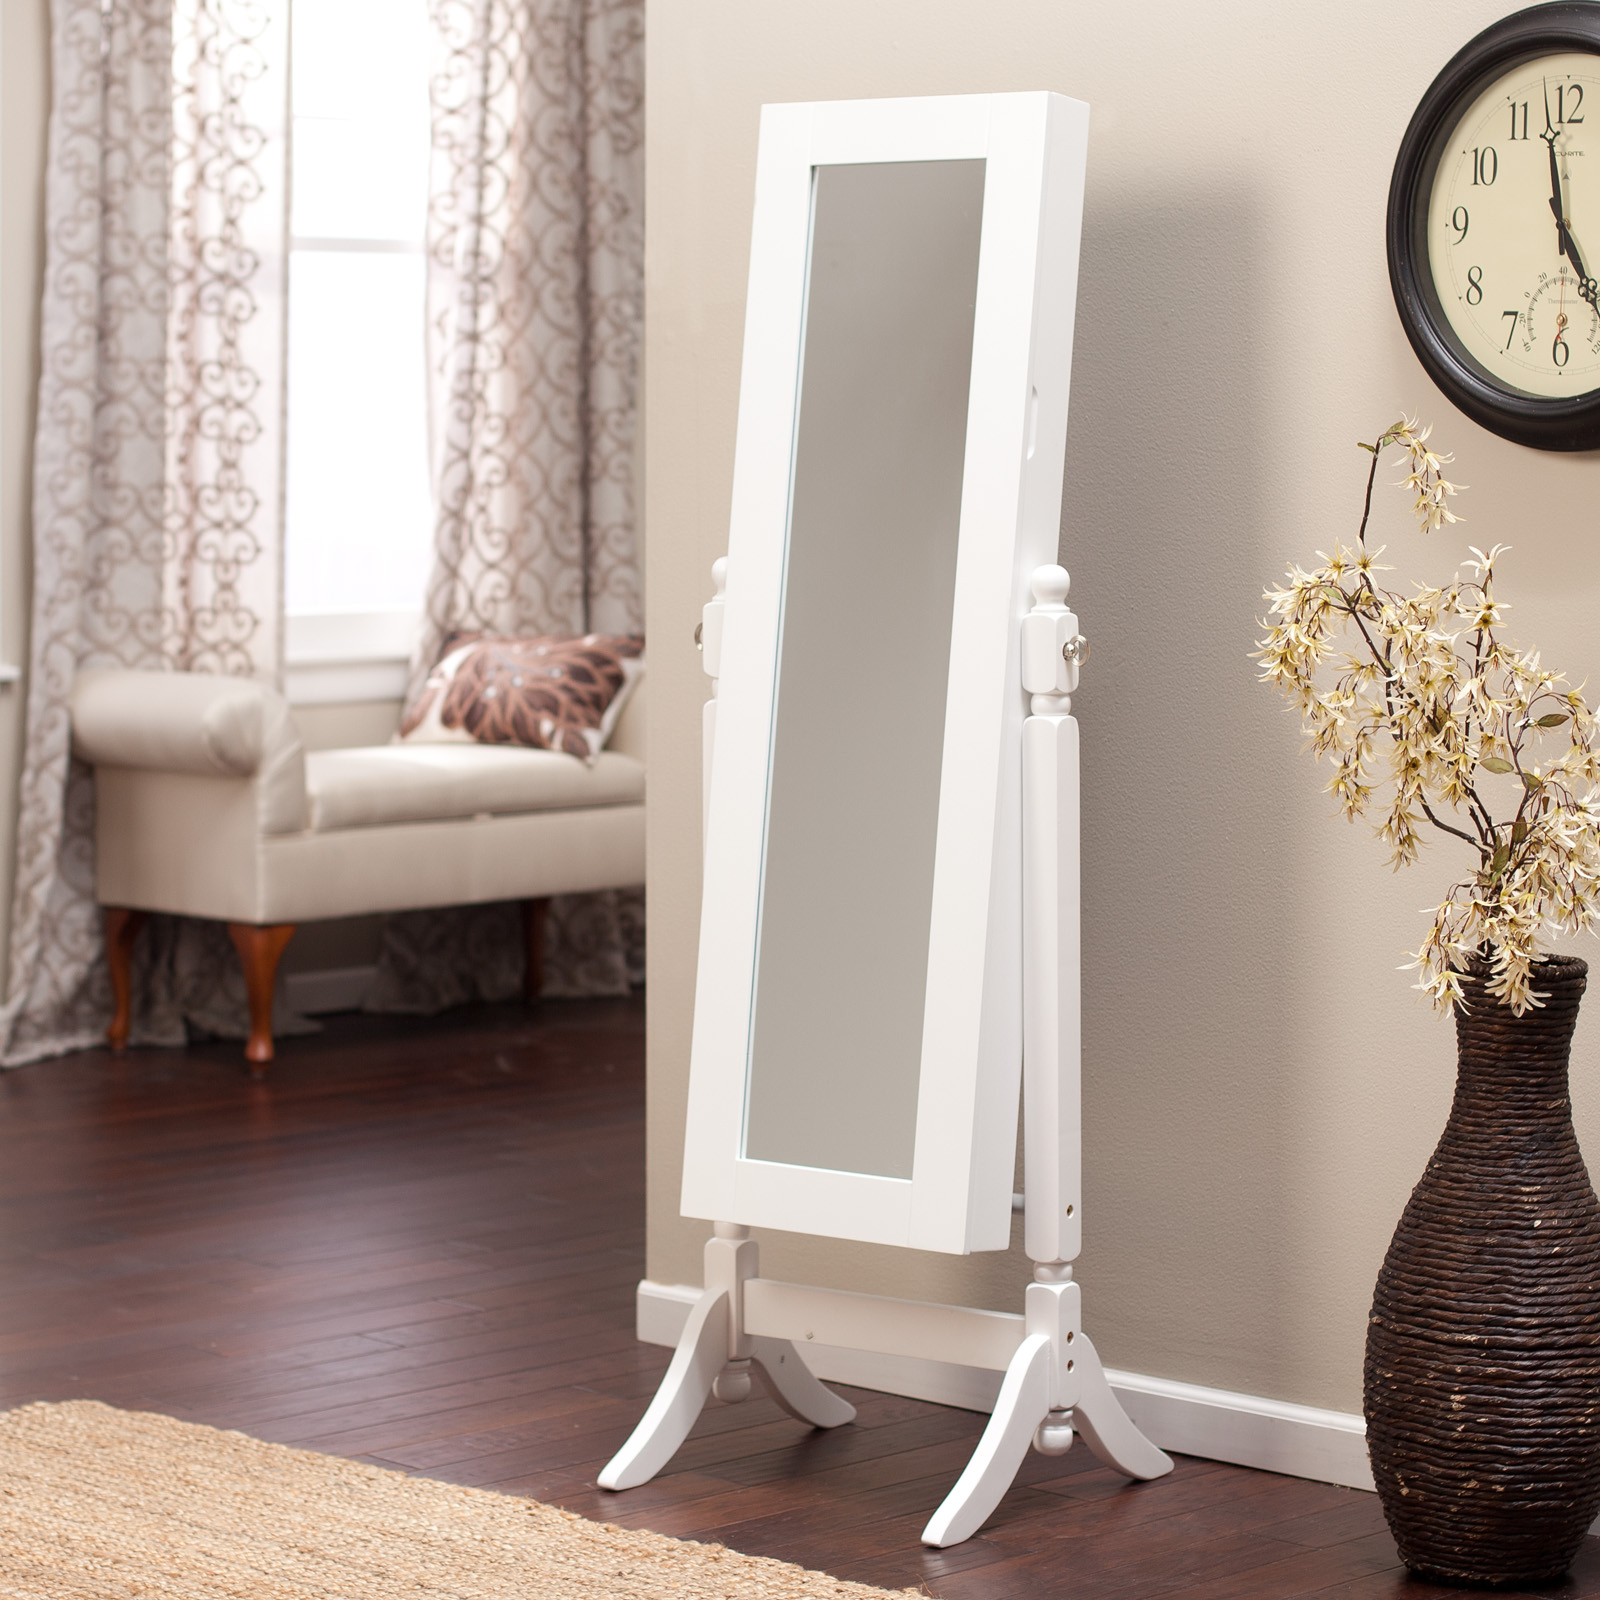 Belham Living White Full Length Cheval Mirror Jewelry Armoire With Lock |  Hayneedle